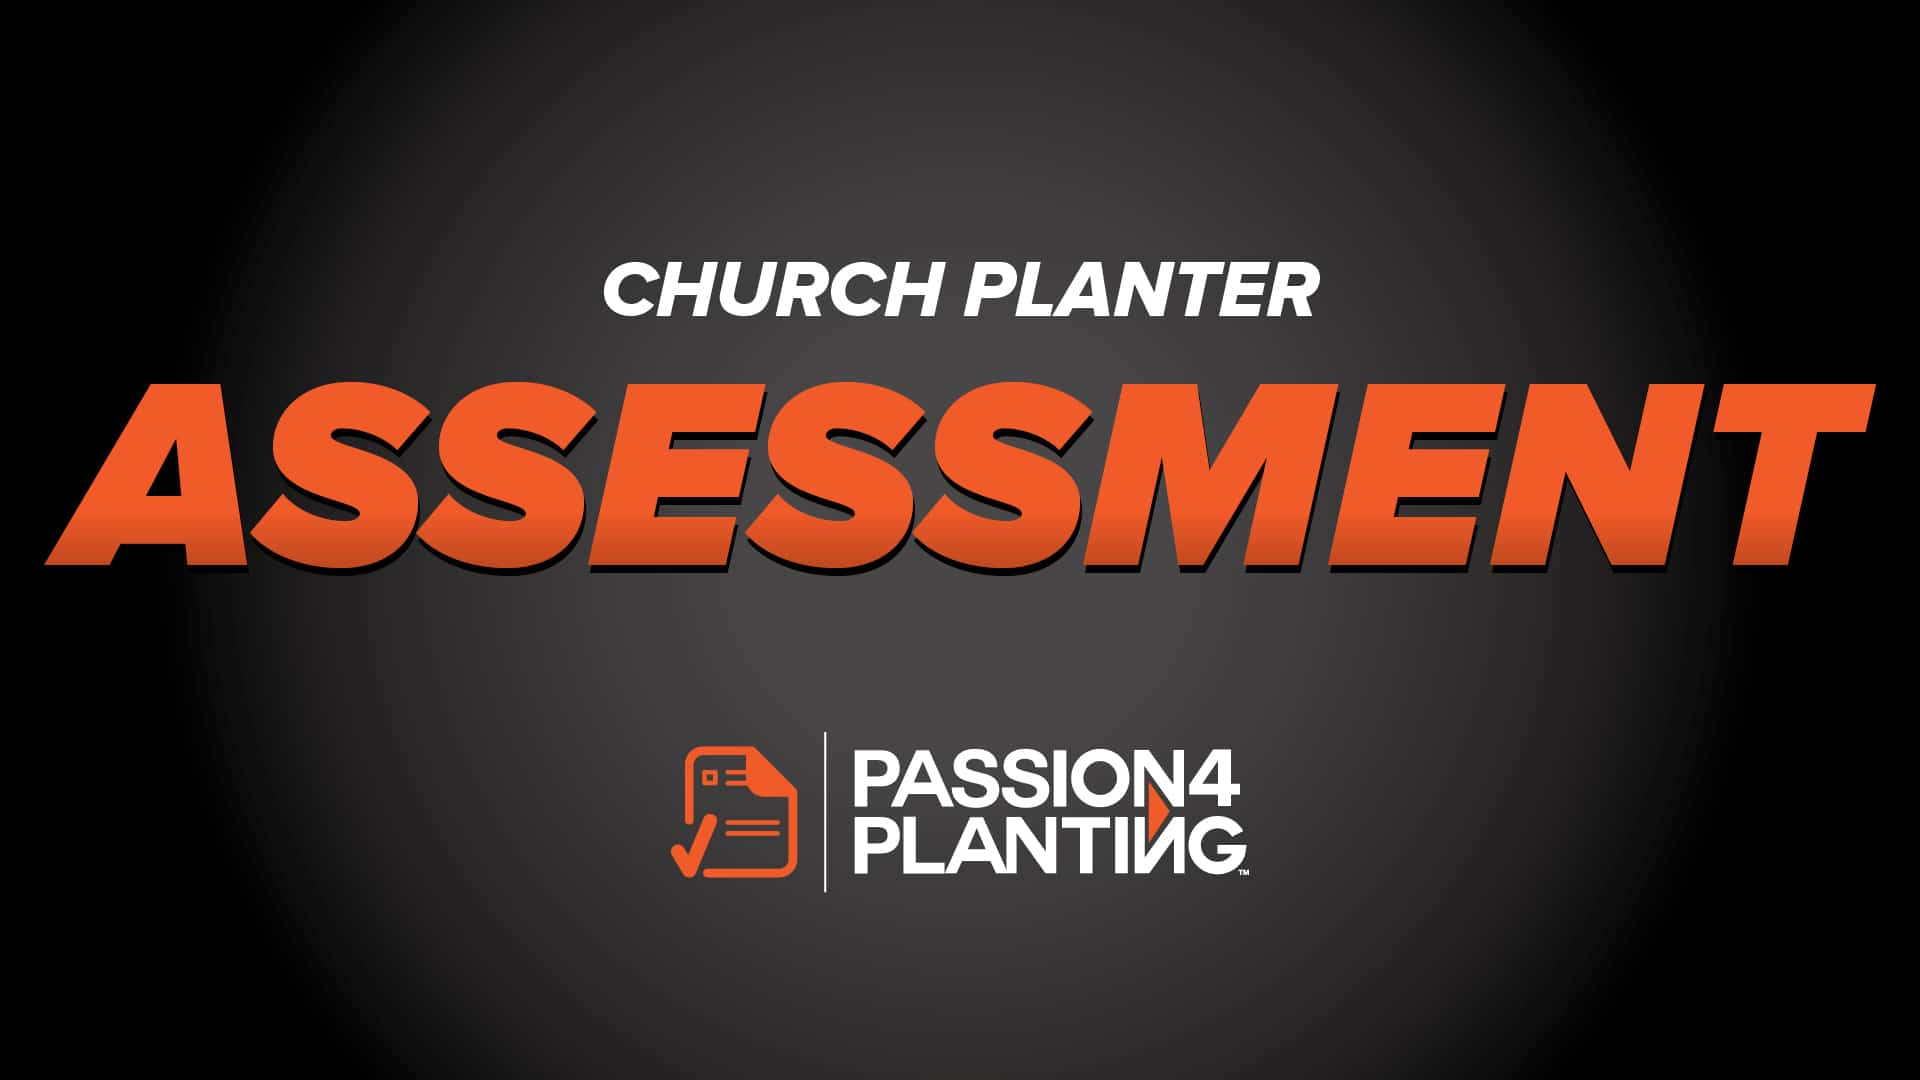 <p>Church planting is not for everyone. It requires a unique calling and gifting. If our goal is to plant healthy multiplying churches, we need to start with healthy leaders. Assessment helps affirm those leaders. Passion for Planting&#8217;s Assessment Center combines a pre-screening process along with a formal on-site assessment to evaluate a [&hellip;]</p>